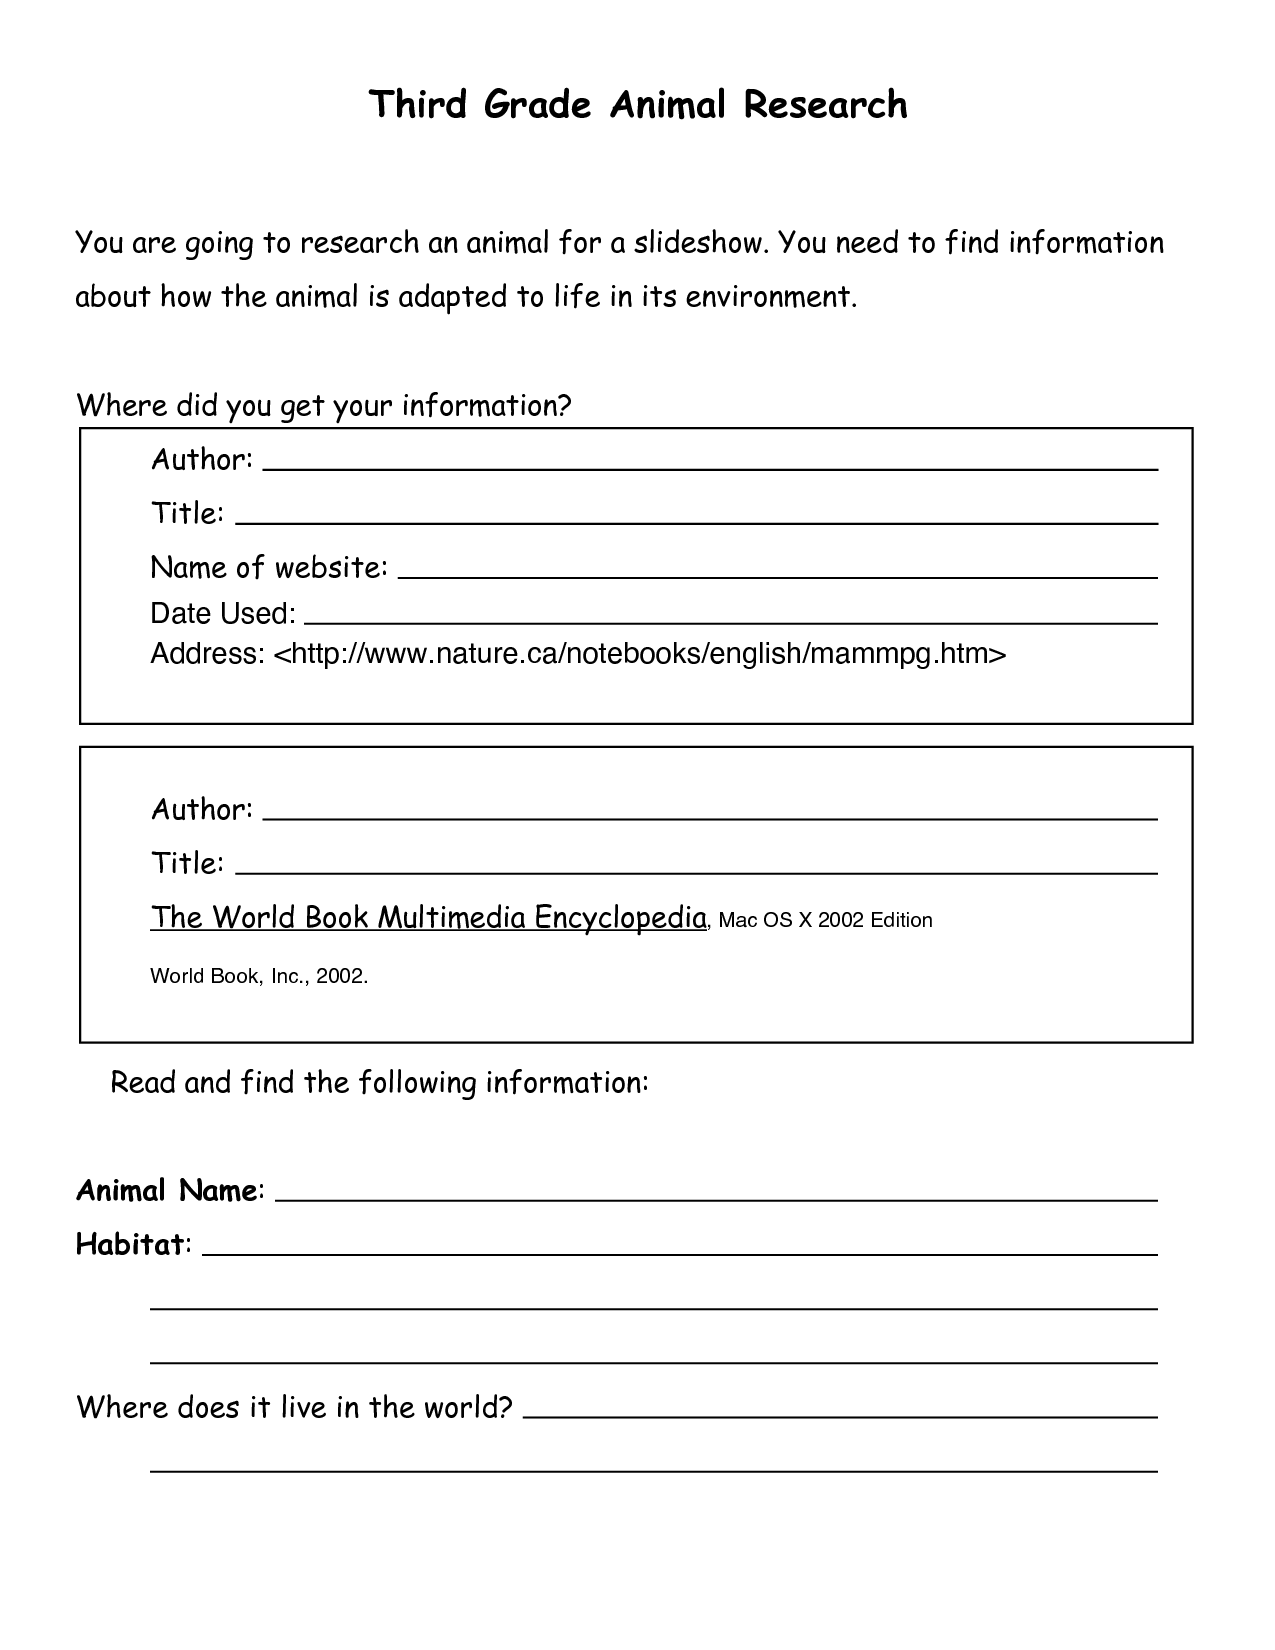 This Is A Sample Template That My Children Will Use To Help Guide